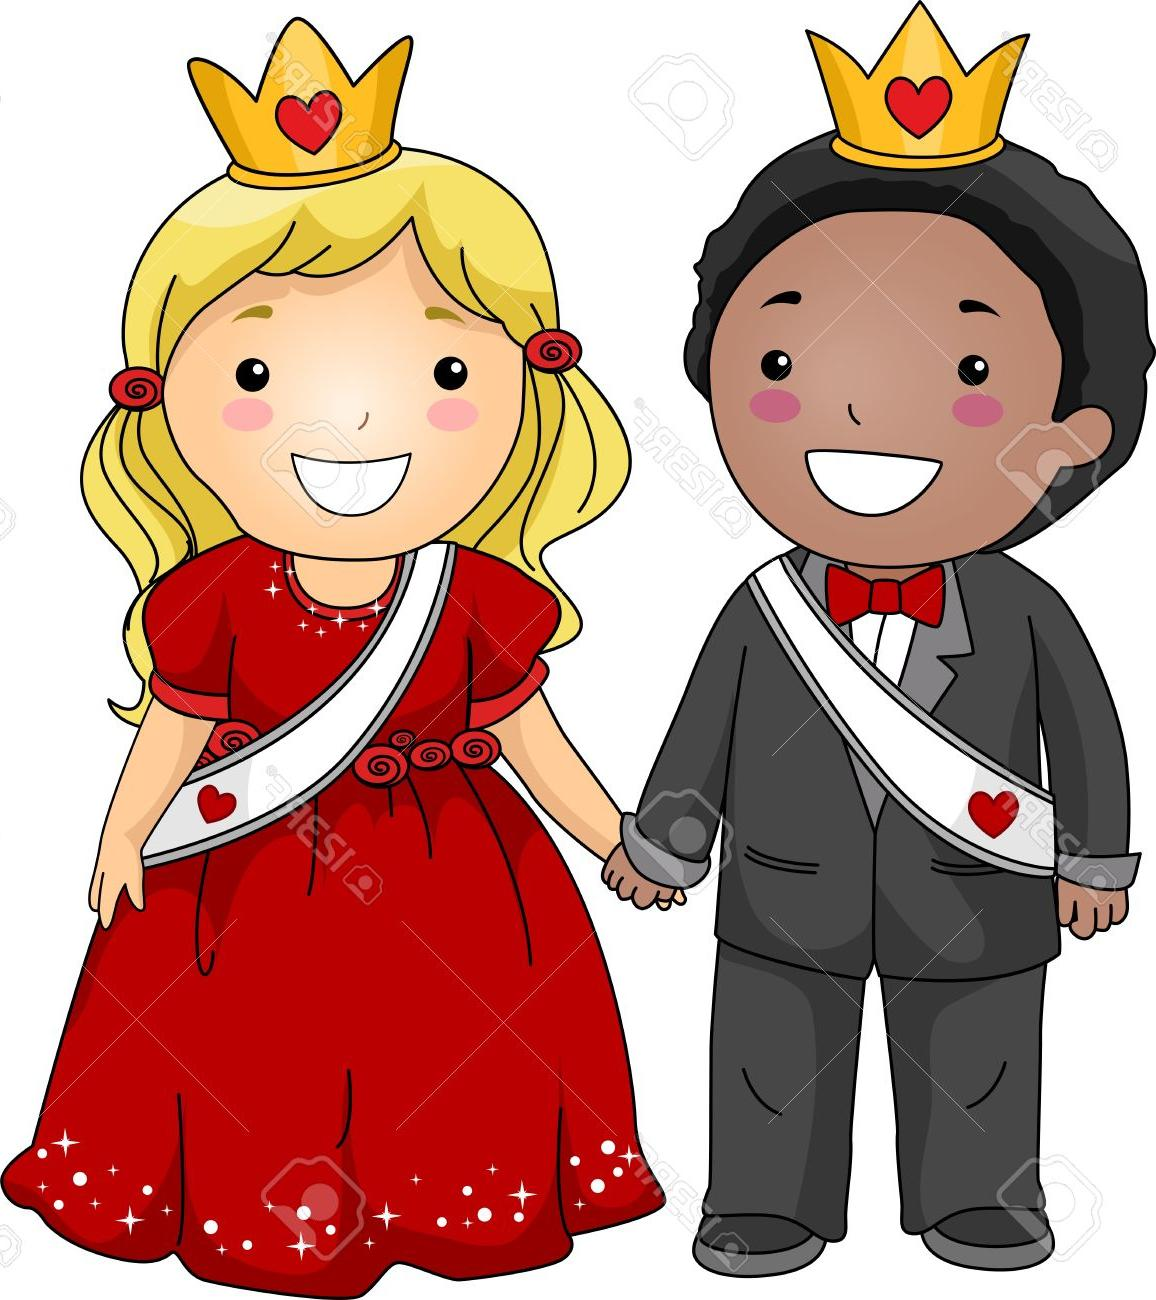 King and queen clipart 8 » Clipart Station.